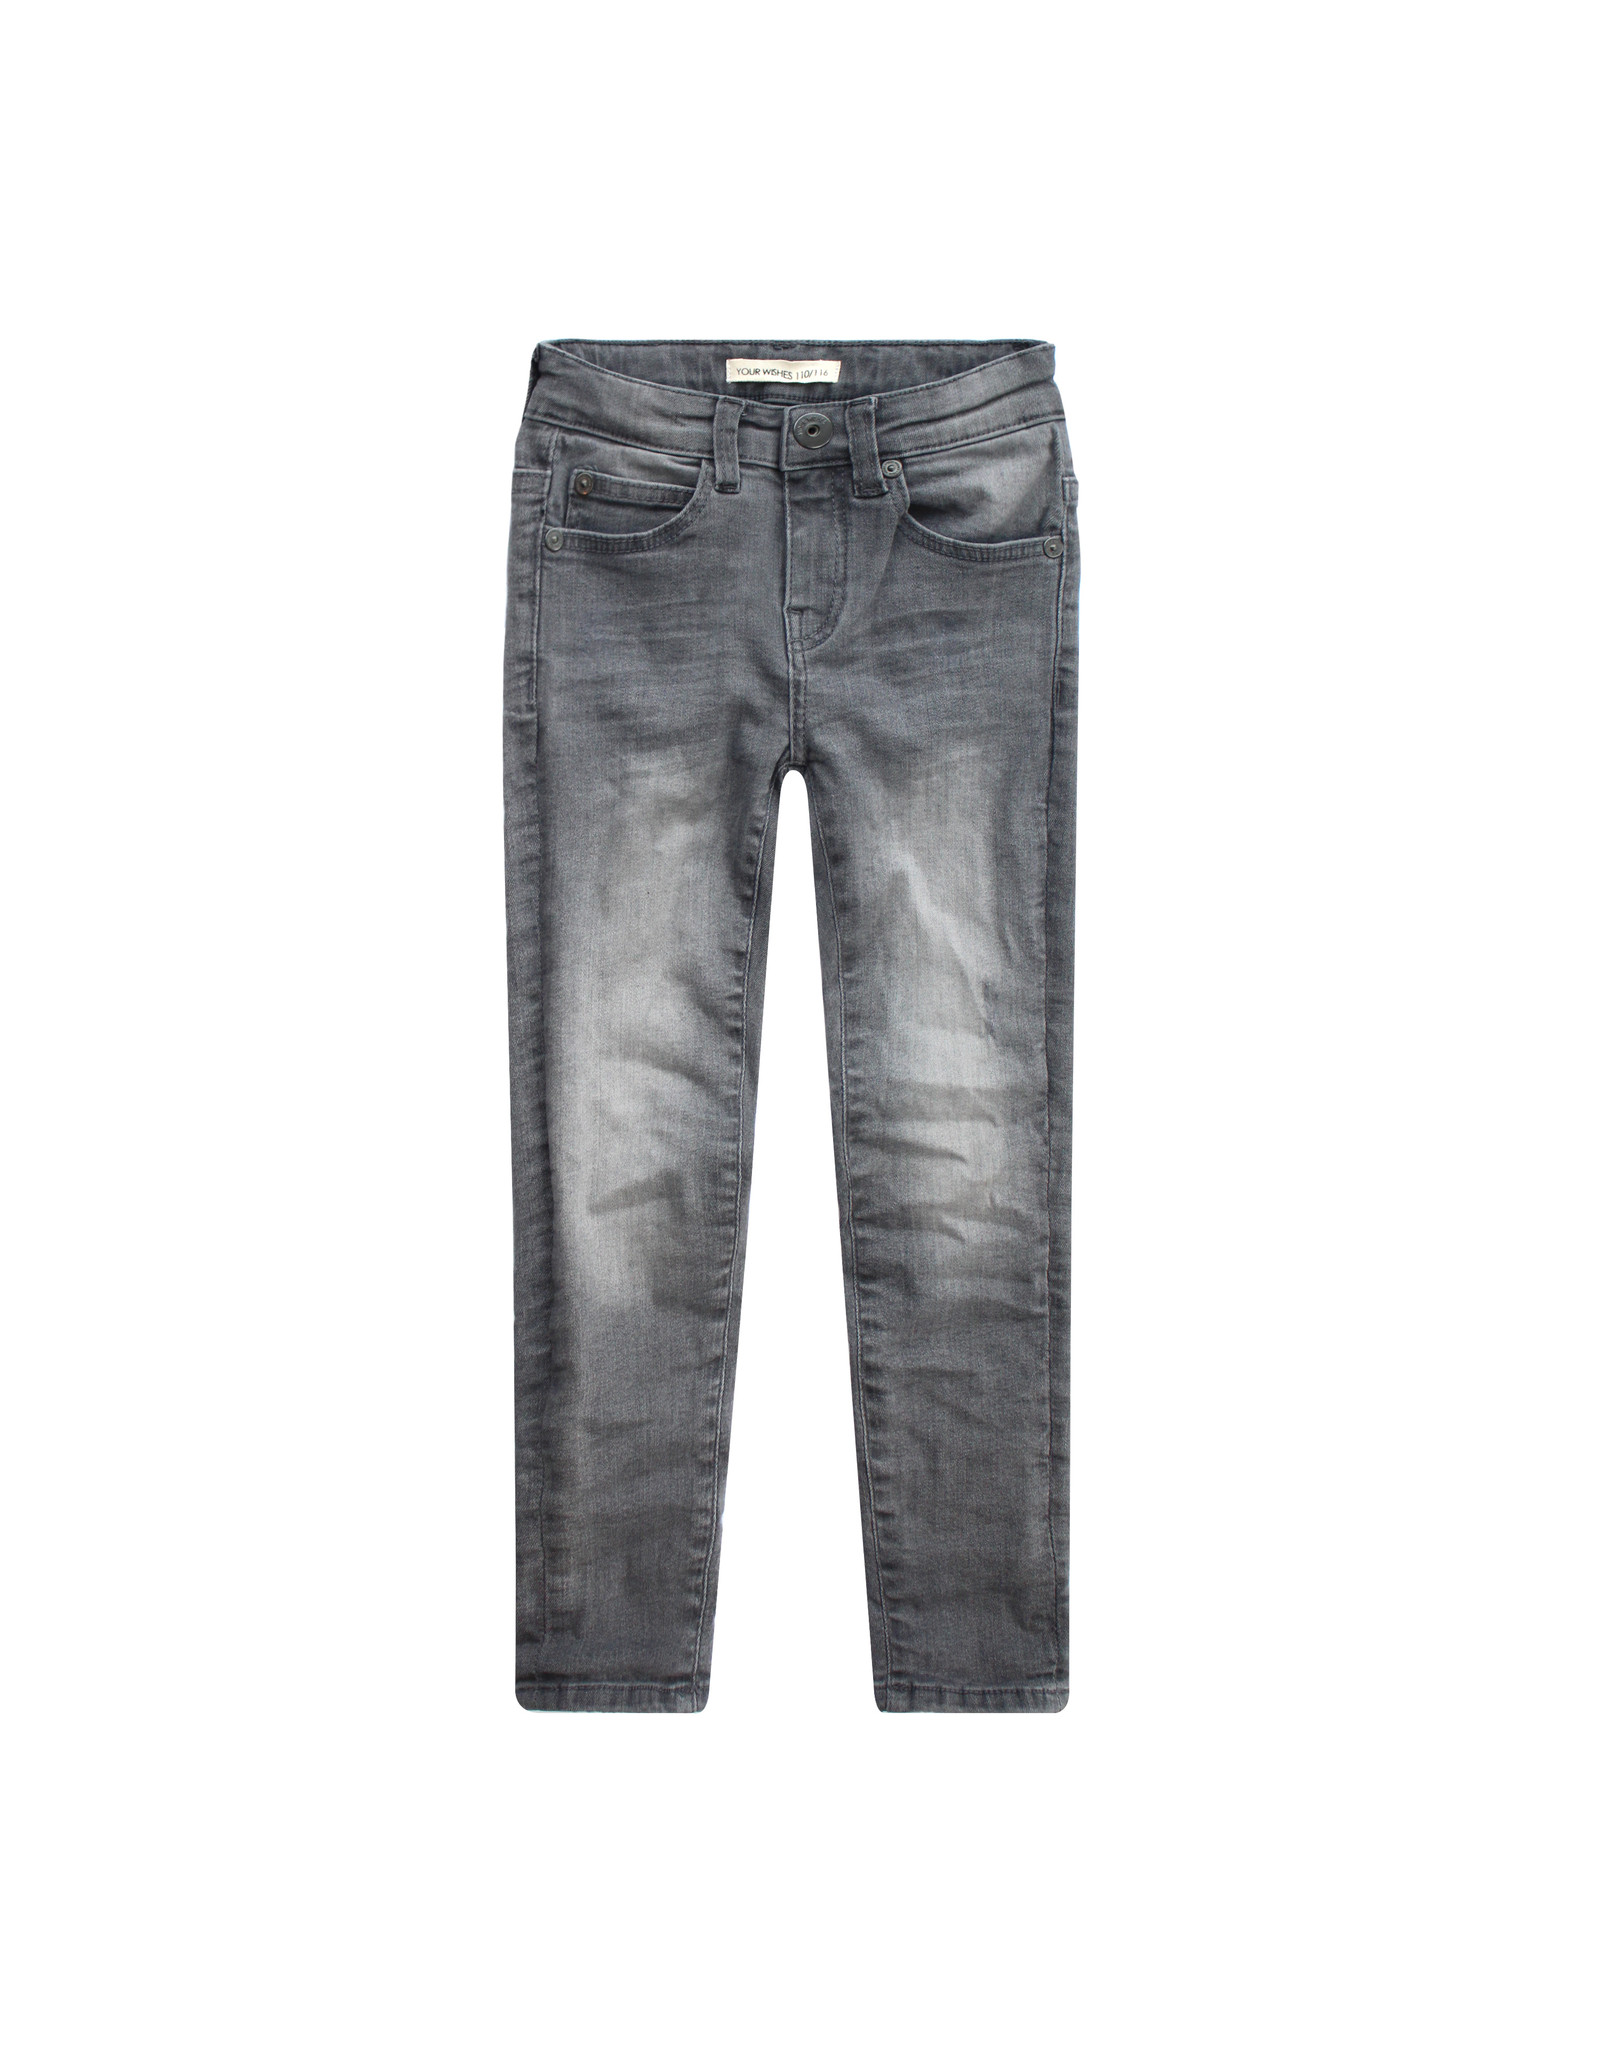 Your Wishes Your Wishes Denim Slim Fit Jeans Grey